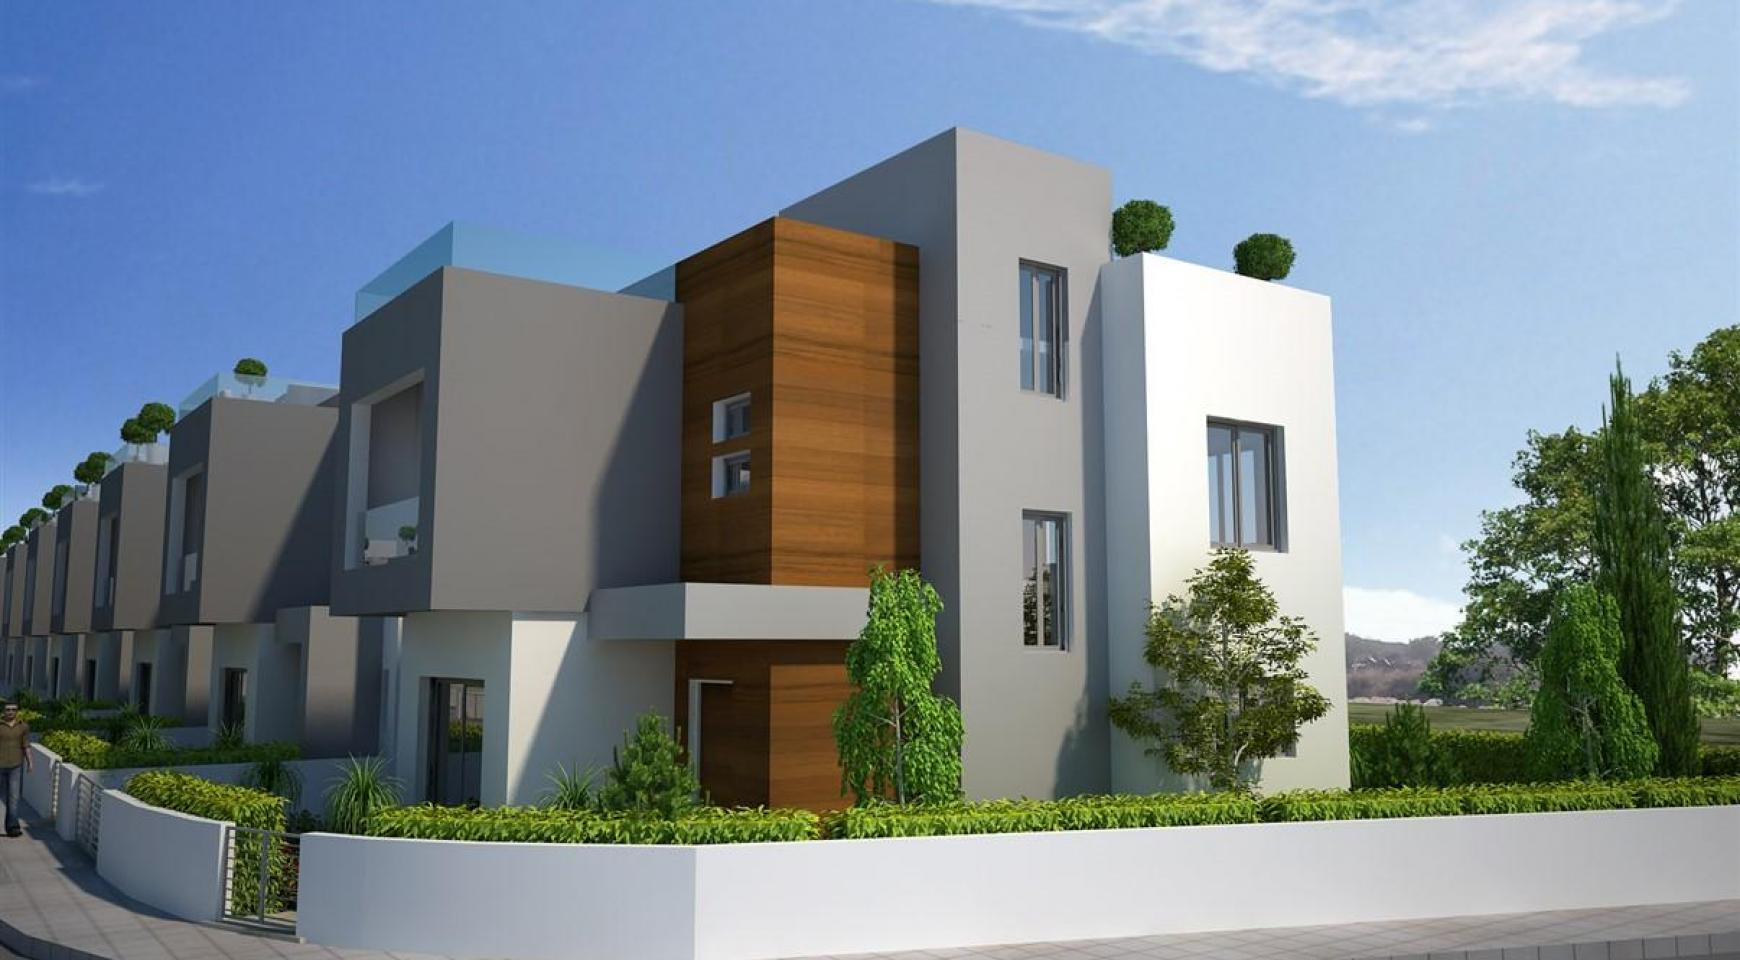 3 Bedroom Villa in New Project in Paphos - 39